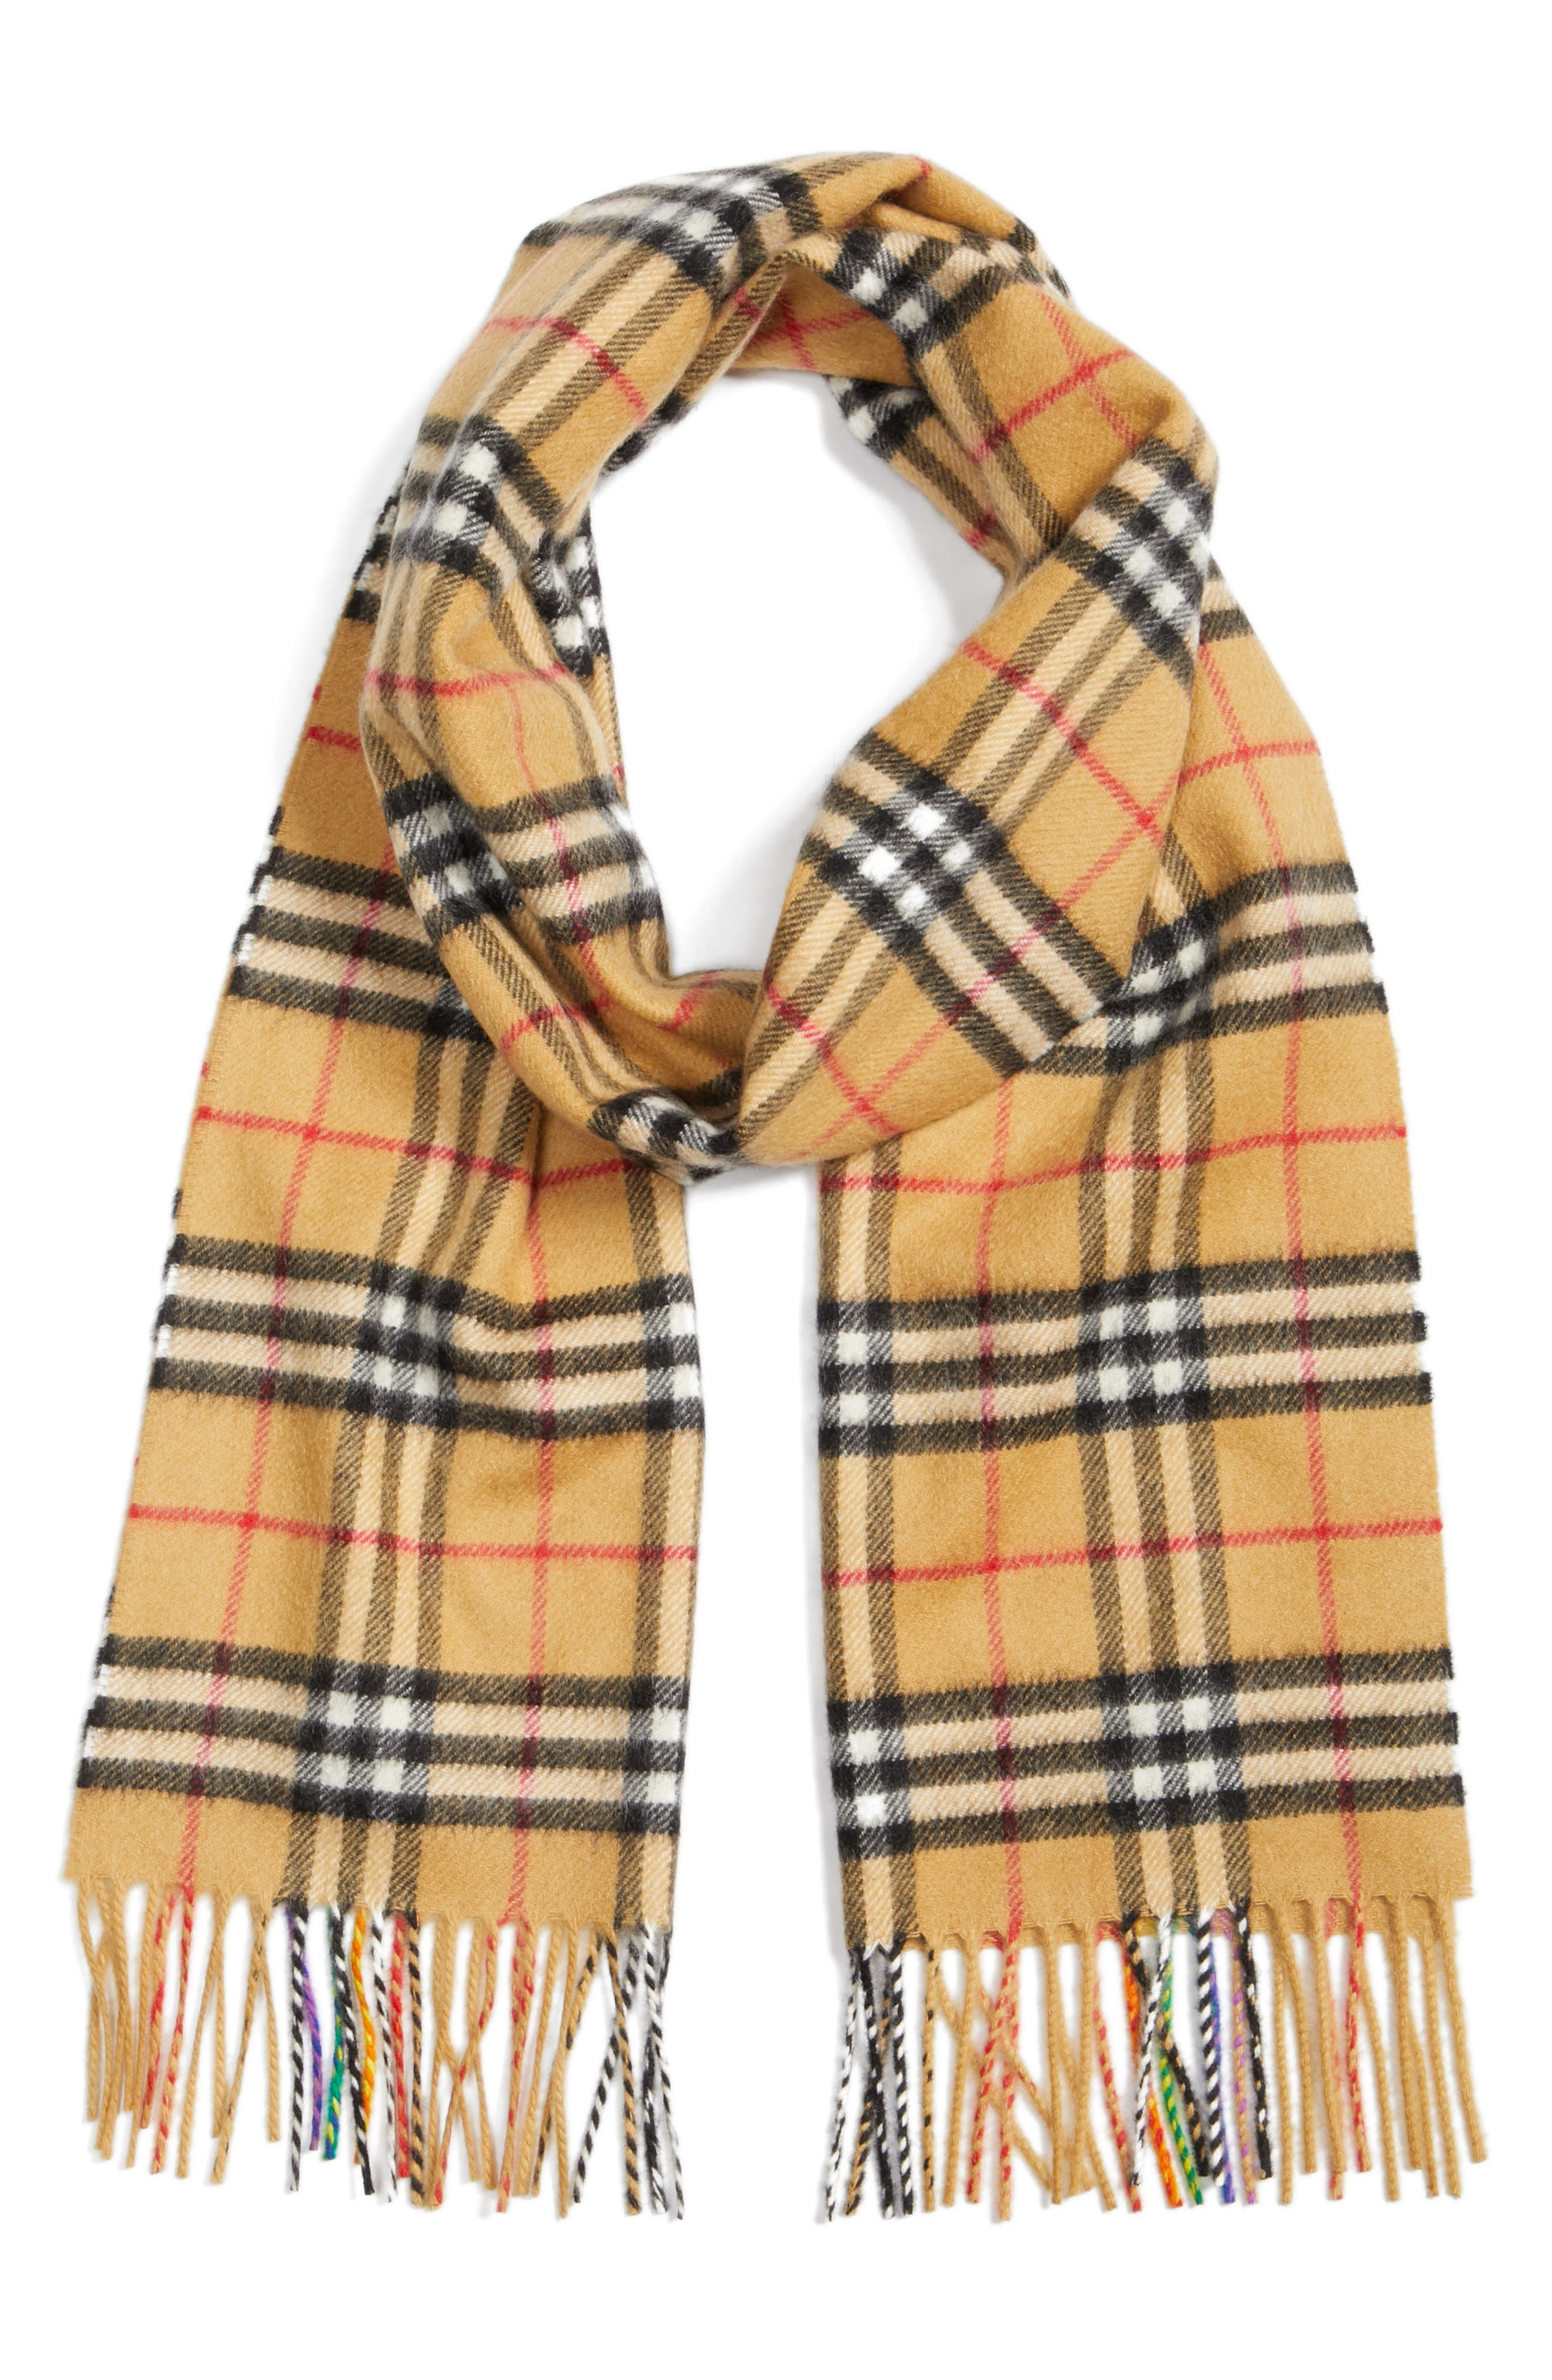 BURBERRY,                             Rainbow Stripe Vintage Check Cashmere Scarf,                             Alternate thumbnail 3, color,                             ANTIQUE YELLOW/ RAINBOW